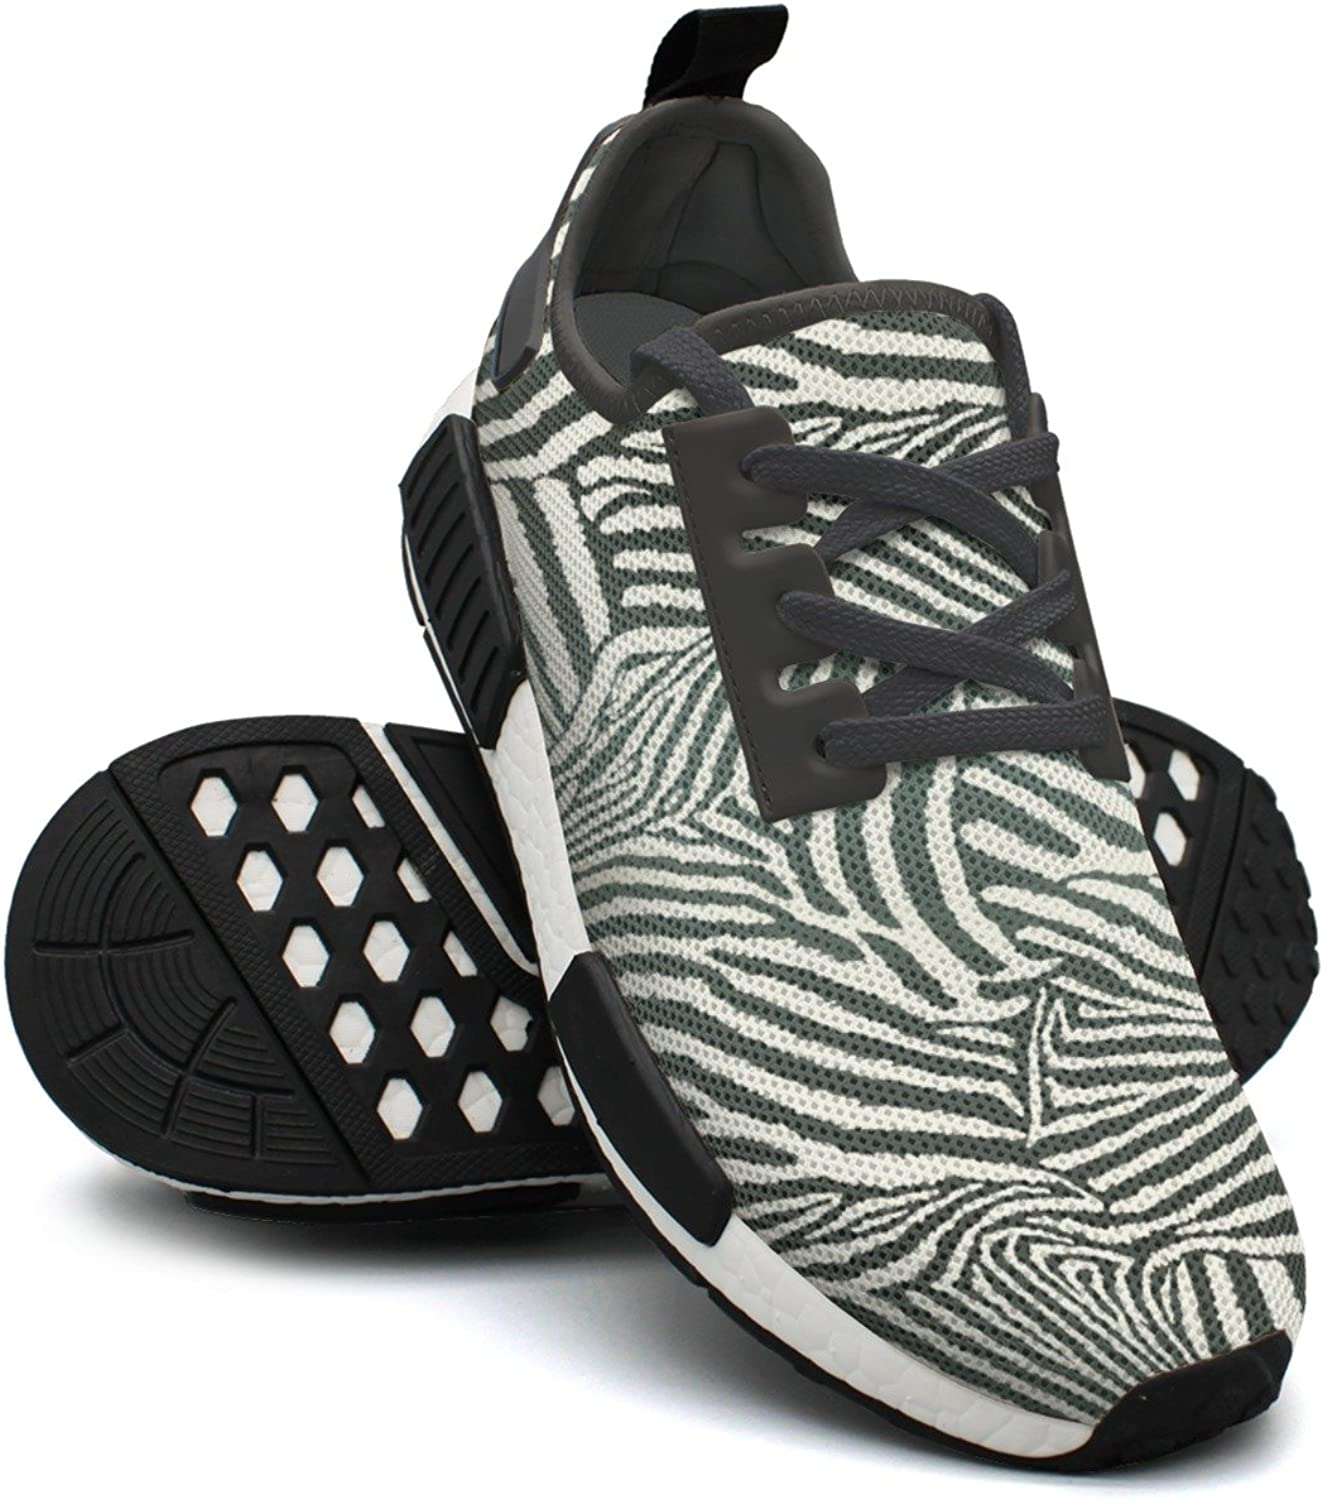 Animal Zebra Print Sport Tennis colorful Running shoes Womens NMD